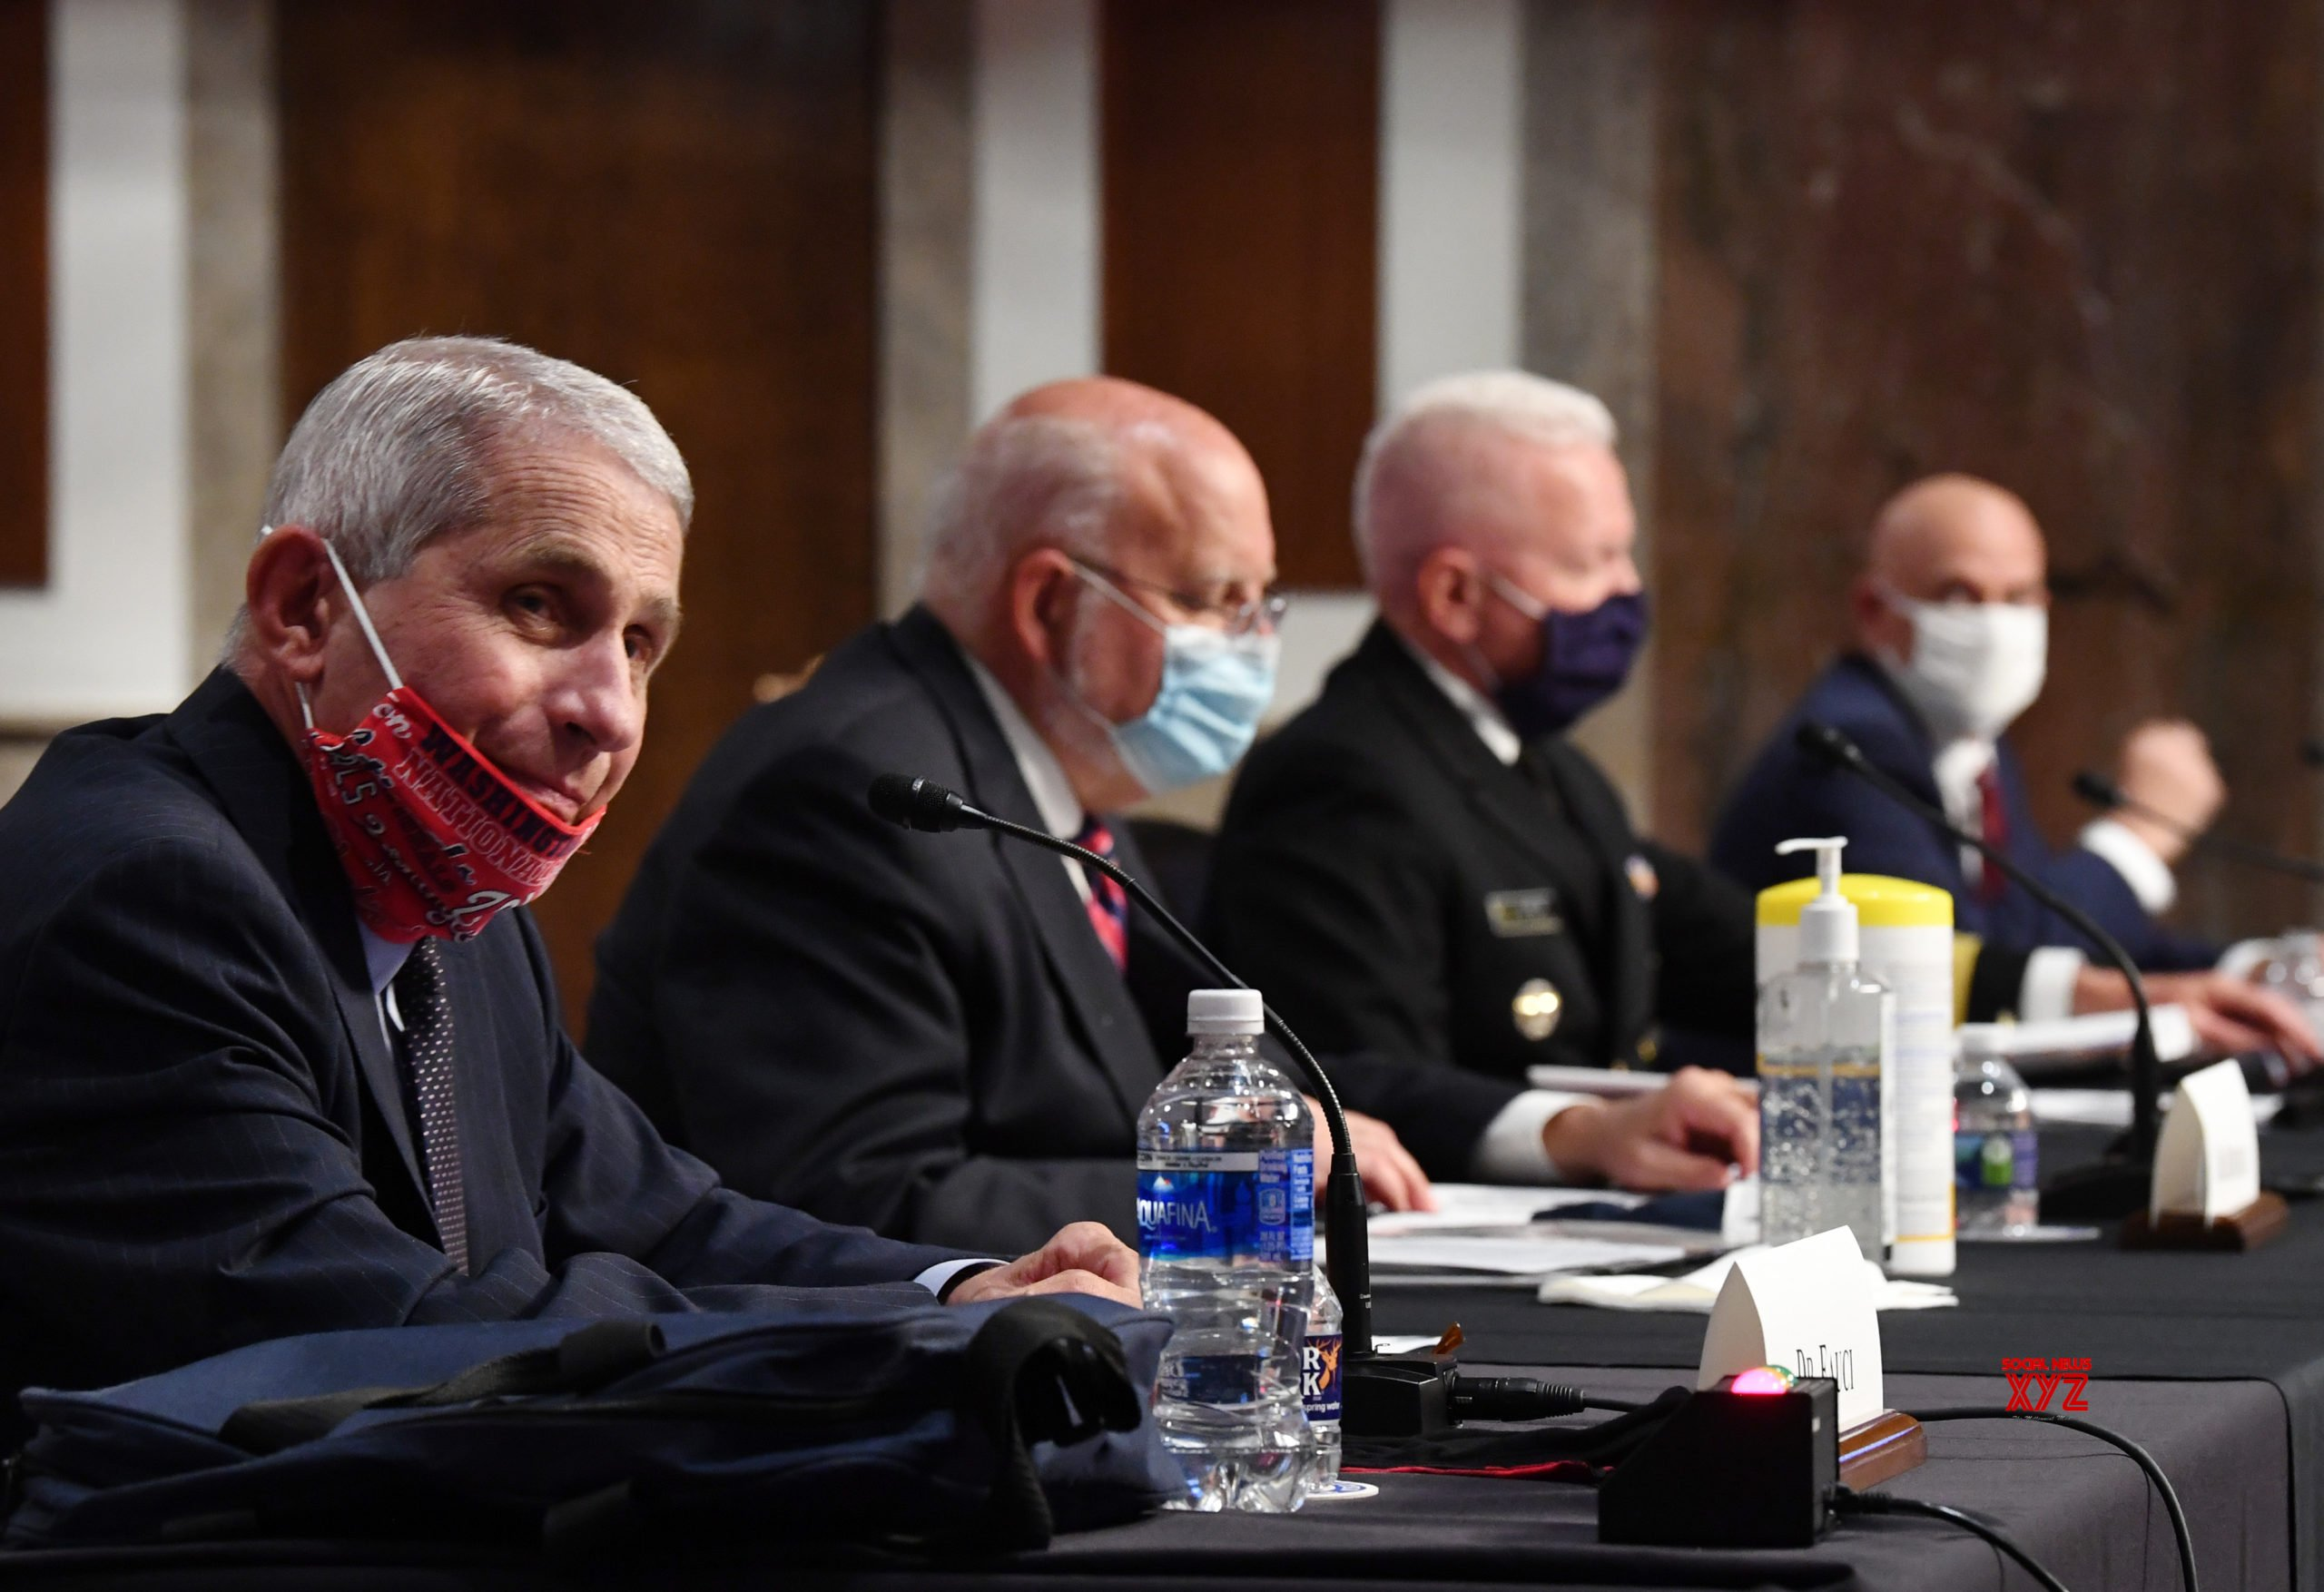 U.S. - WASHINGTON, D.C. - SENATE - HEARING - COVID - 19 #Gallery